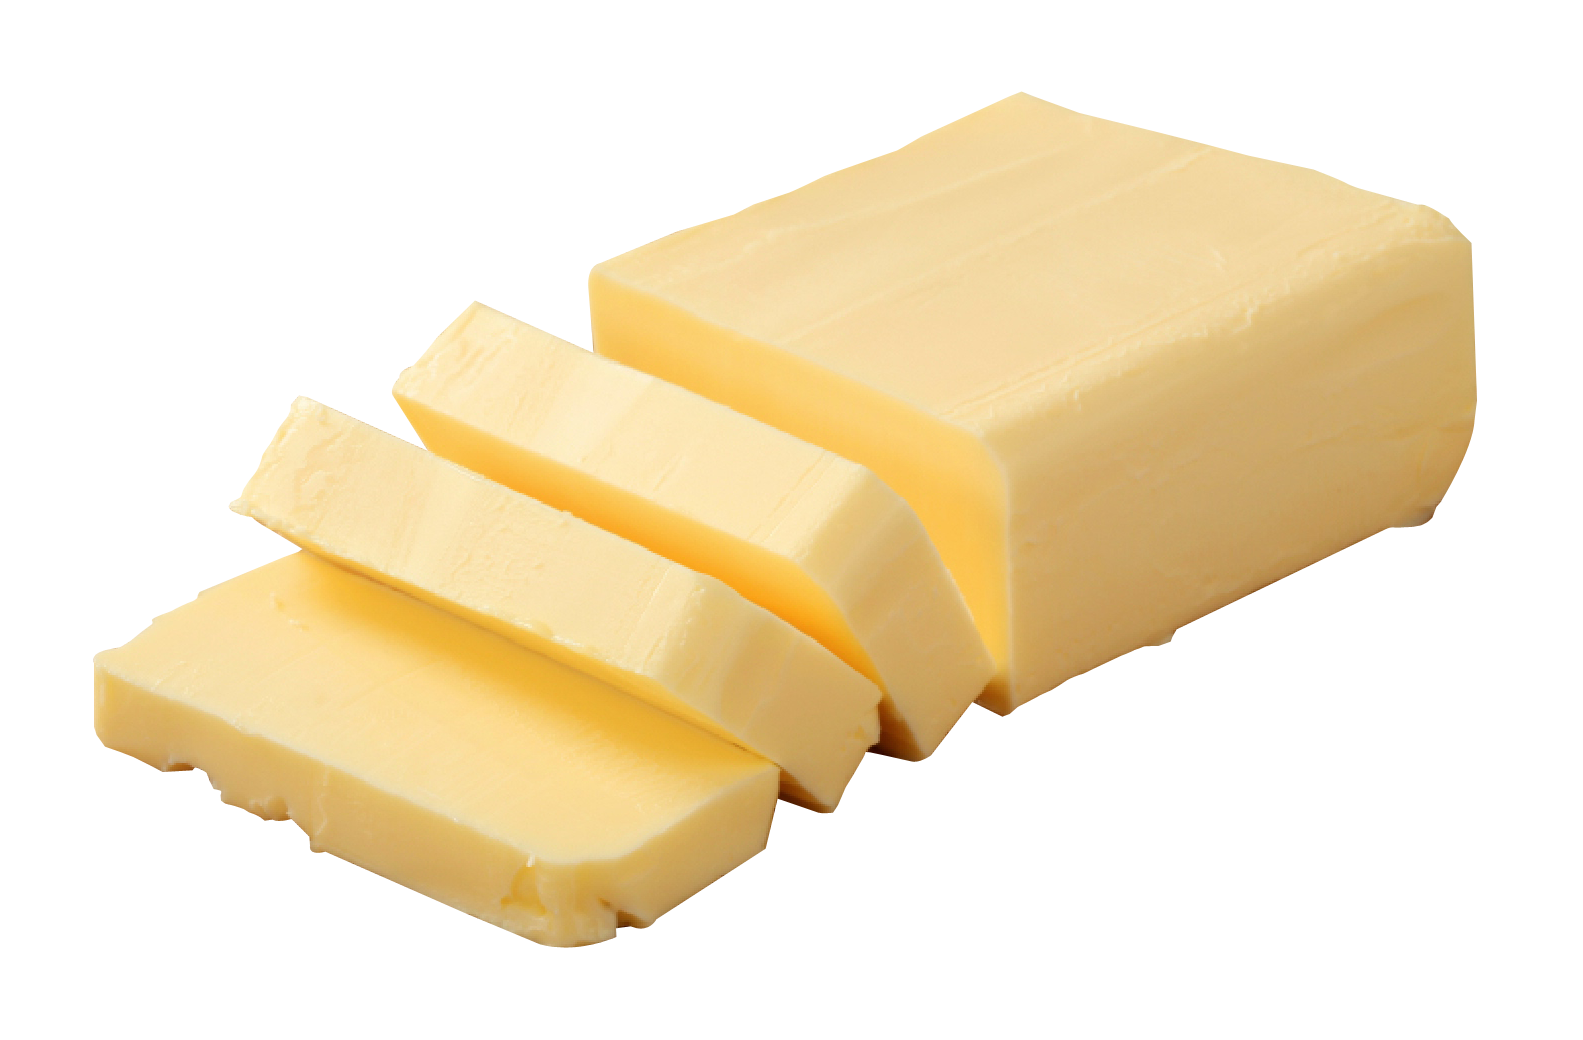 Butter clipart png. Image purepng free transparent